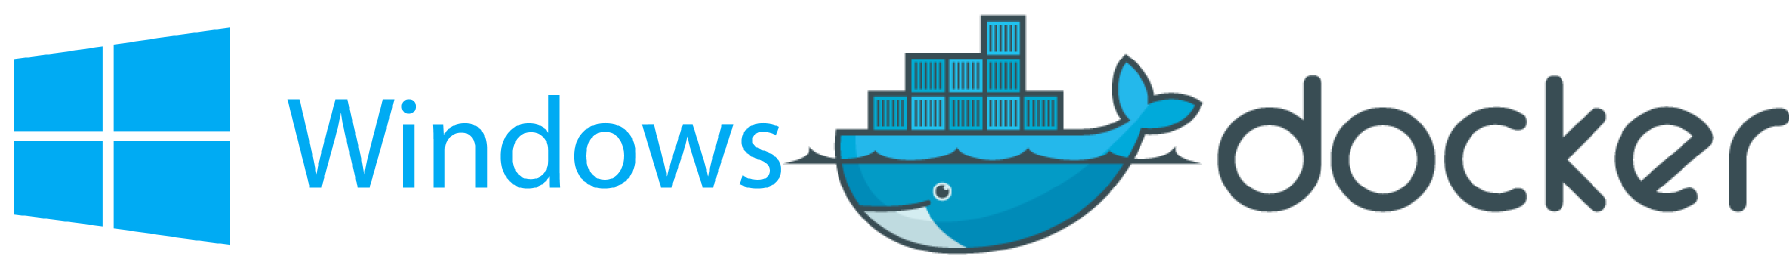 Docker's Container Technology for Windows